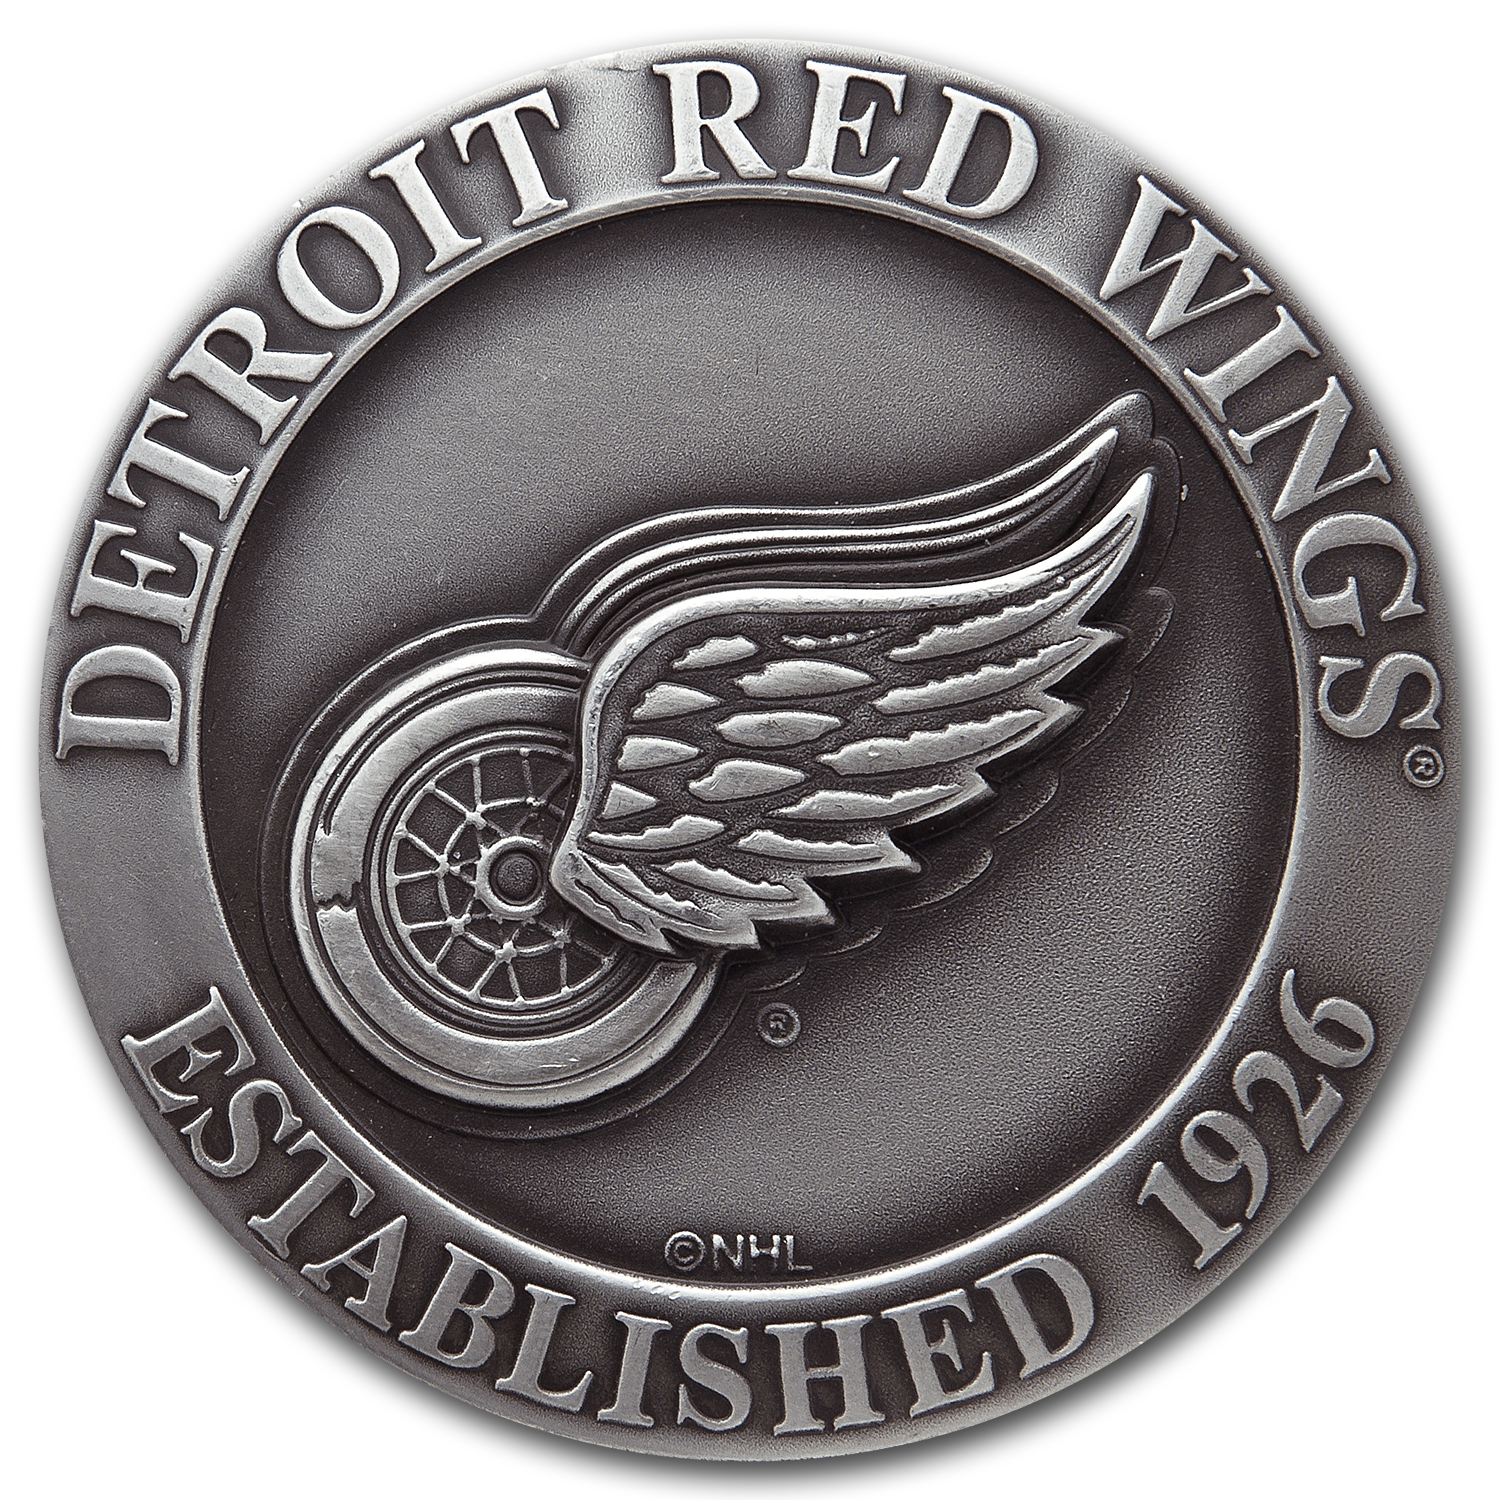 4.315 oz Silver Rounds - Detroit Red Wings